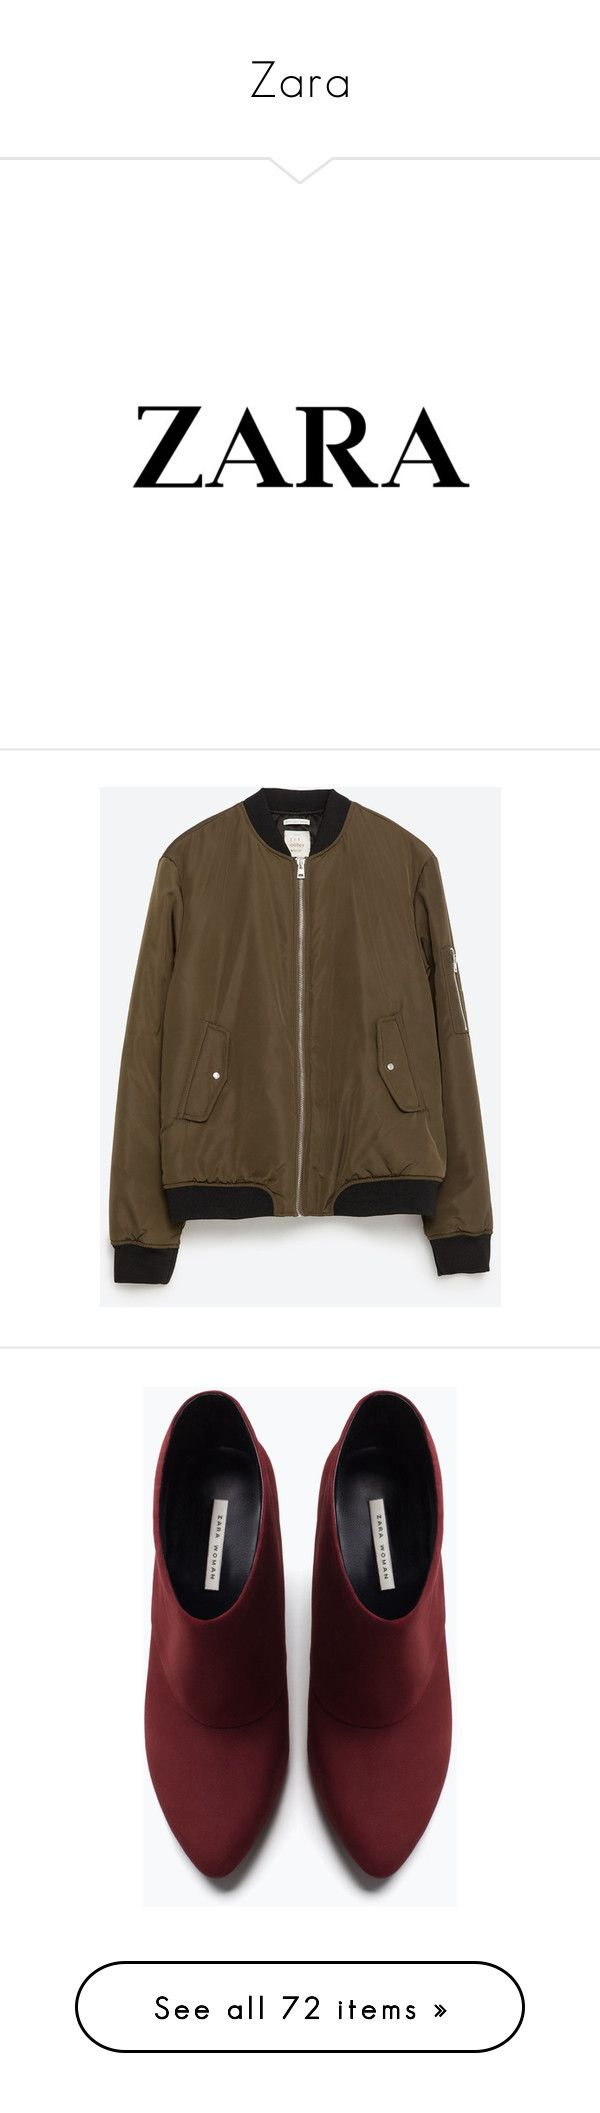 """""""Zara"""" by dddawn ❤ liked on Polyvore featuring logos, outerwear, jackets, zara, bomber jacket, bomber, moss green, flight bomber jacket, nylon bomber jacket and lined bomber jacket"""